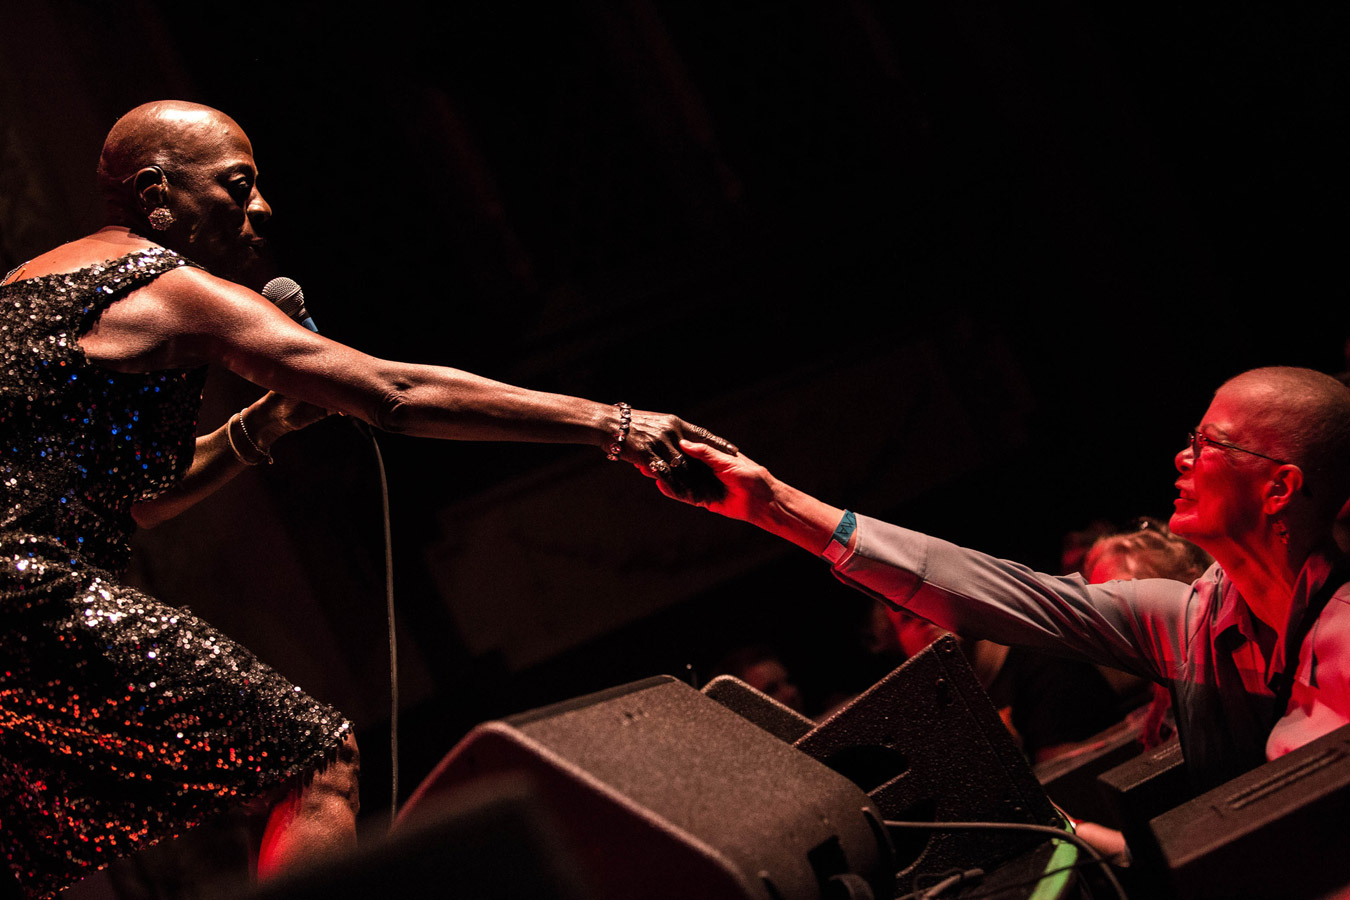 """Miss Sharon Jones"", © Jeffrey Neubauer, Missoula, MT, United States, People's Choice : Winner, Ultimate Music Moment"